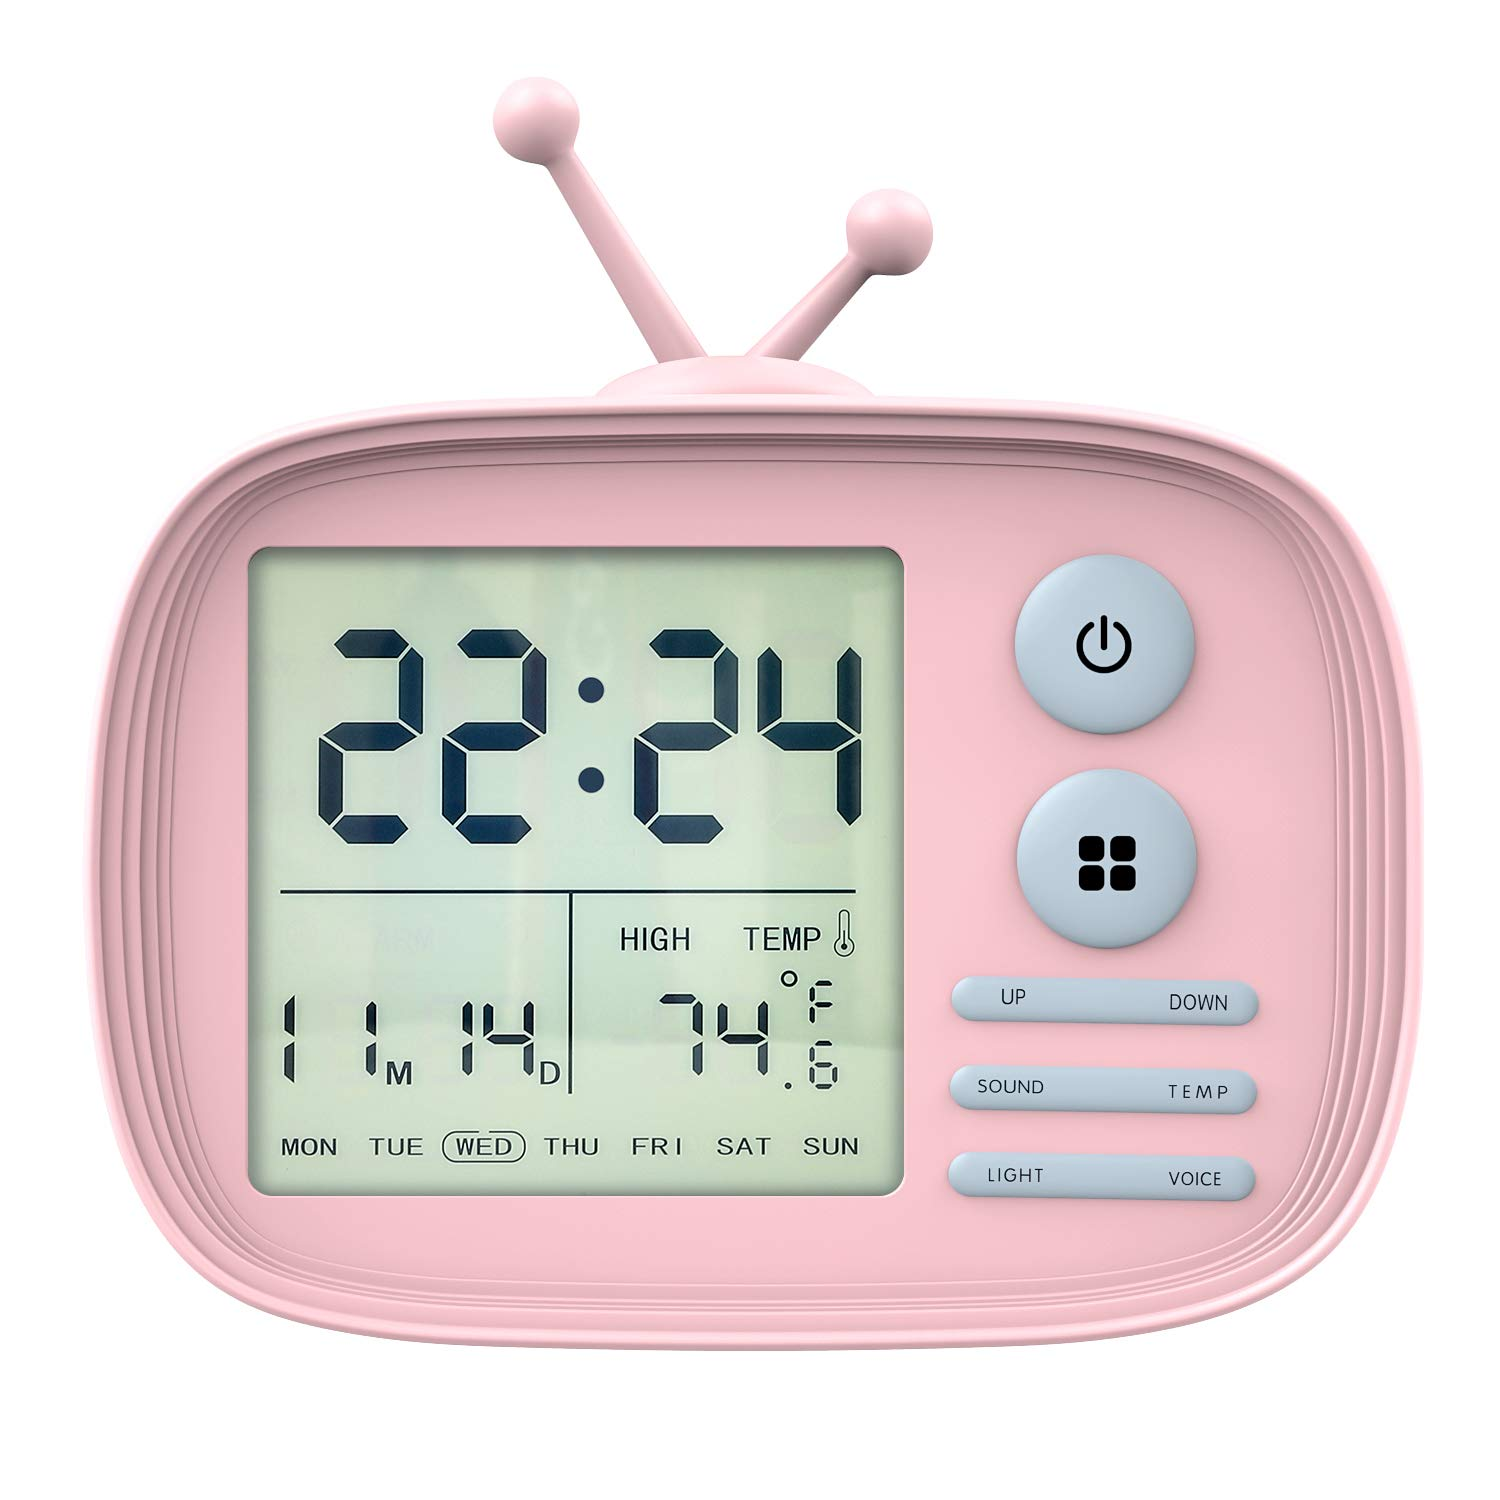 MoKo Kids Alarm Clock, Silicone Case Cute Cartoon TV Digital Clock Bedroom Timer, Date Temperature Display with Snooze/Memory Function, Sound Control Backlight, Rechargeable, USB Powered - Blue LJA-001